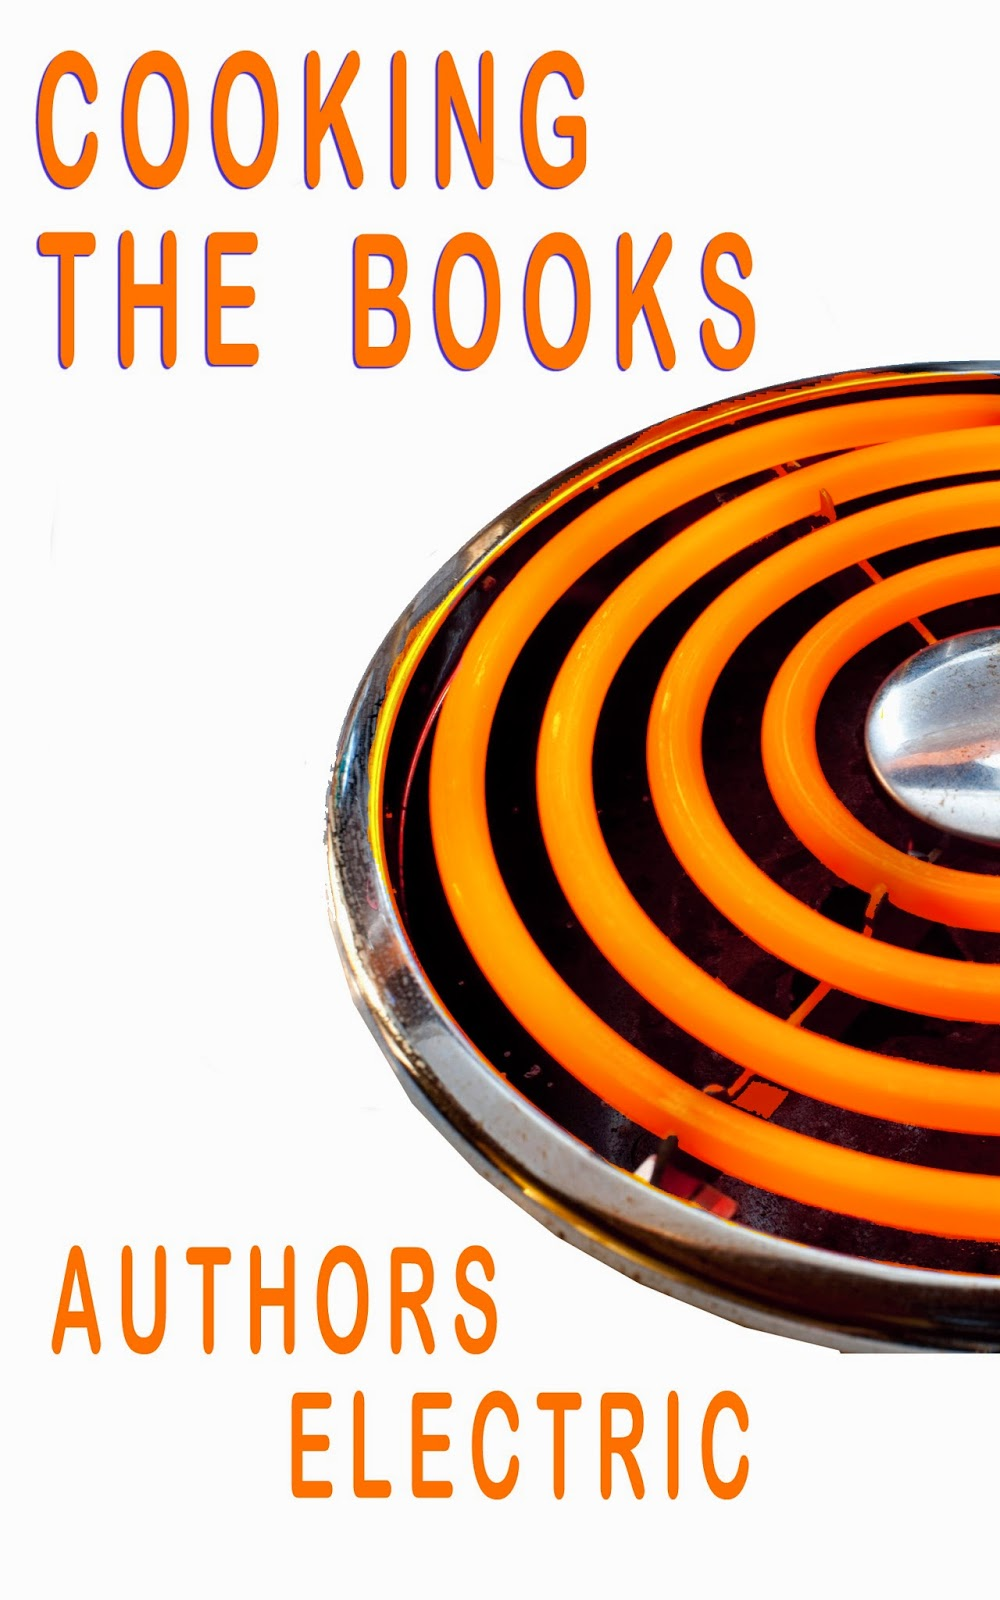 http://www.amazon.co.uk/Cooking-The-Books-Anthology-Electric-ebook/dp/B00J5RQ7OM